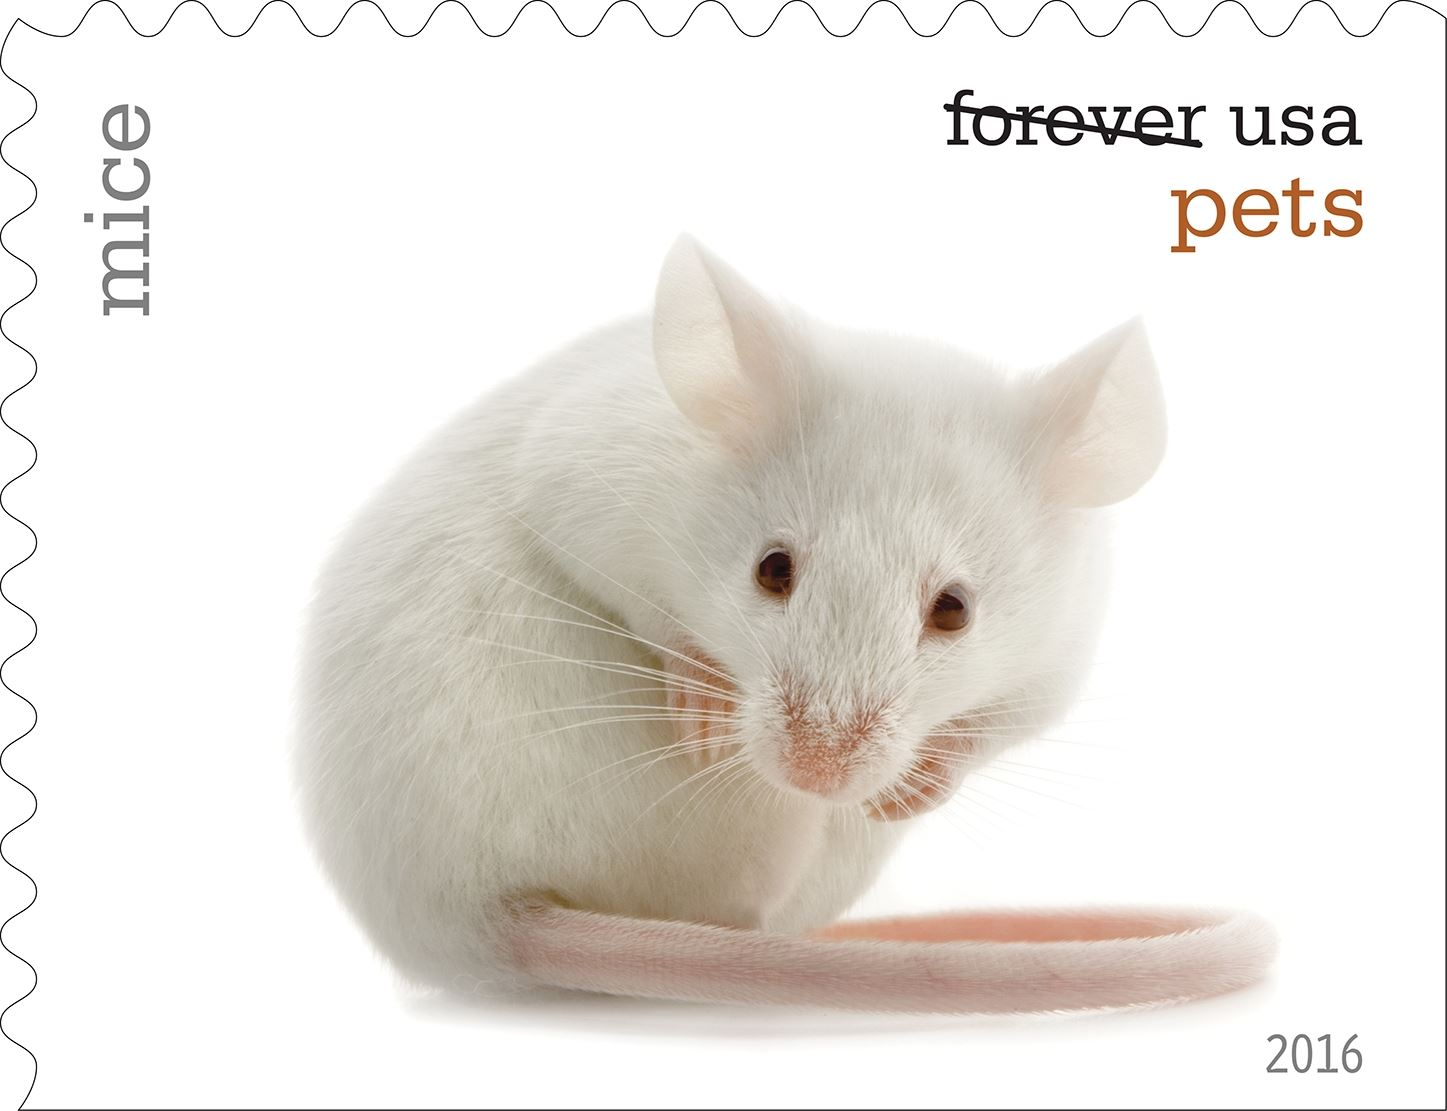 14-0_USPS16STA004o-4 Mice will be among the pets celebrated in an upcoming set of Forever stamps issued by the U.S. Postal Service.